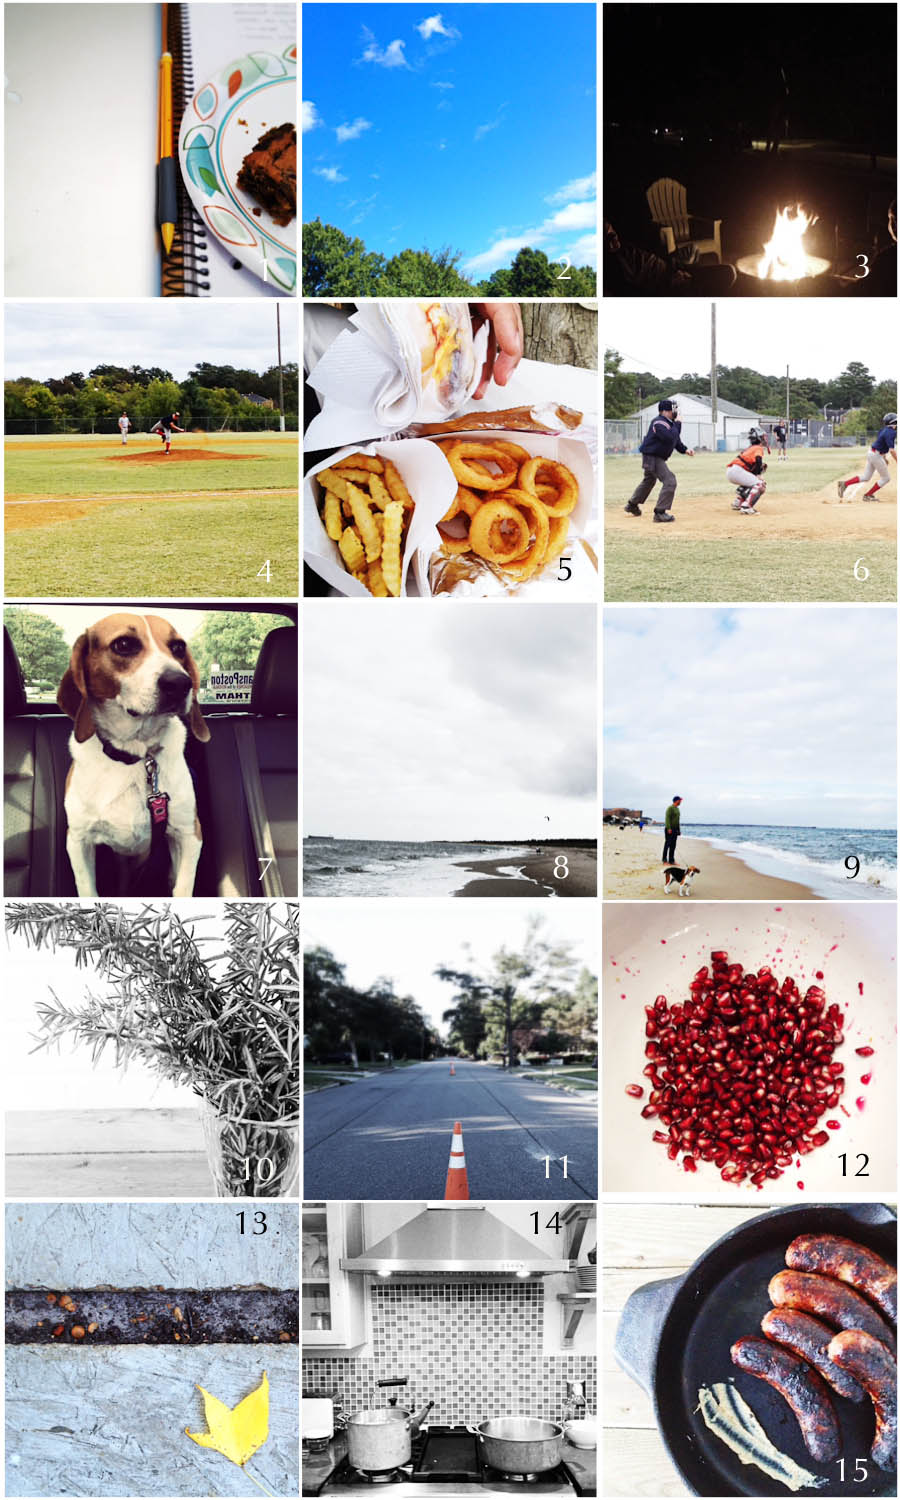 1. Friday meeting | 2. September sky | 3. Fire pit meeting | 4. Starting pitcher | 5. Ballpark food | 6. At bat | 7. Beagle on board | | 8. Black & White Beach | 9. Blowing in the wind | 10. Windowsill herbs | 11. Tiny project | 12. Seeds | 13. Autumn leaves | 14. Kitchen witchcraft | 15. Football food